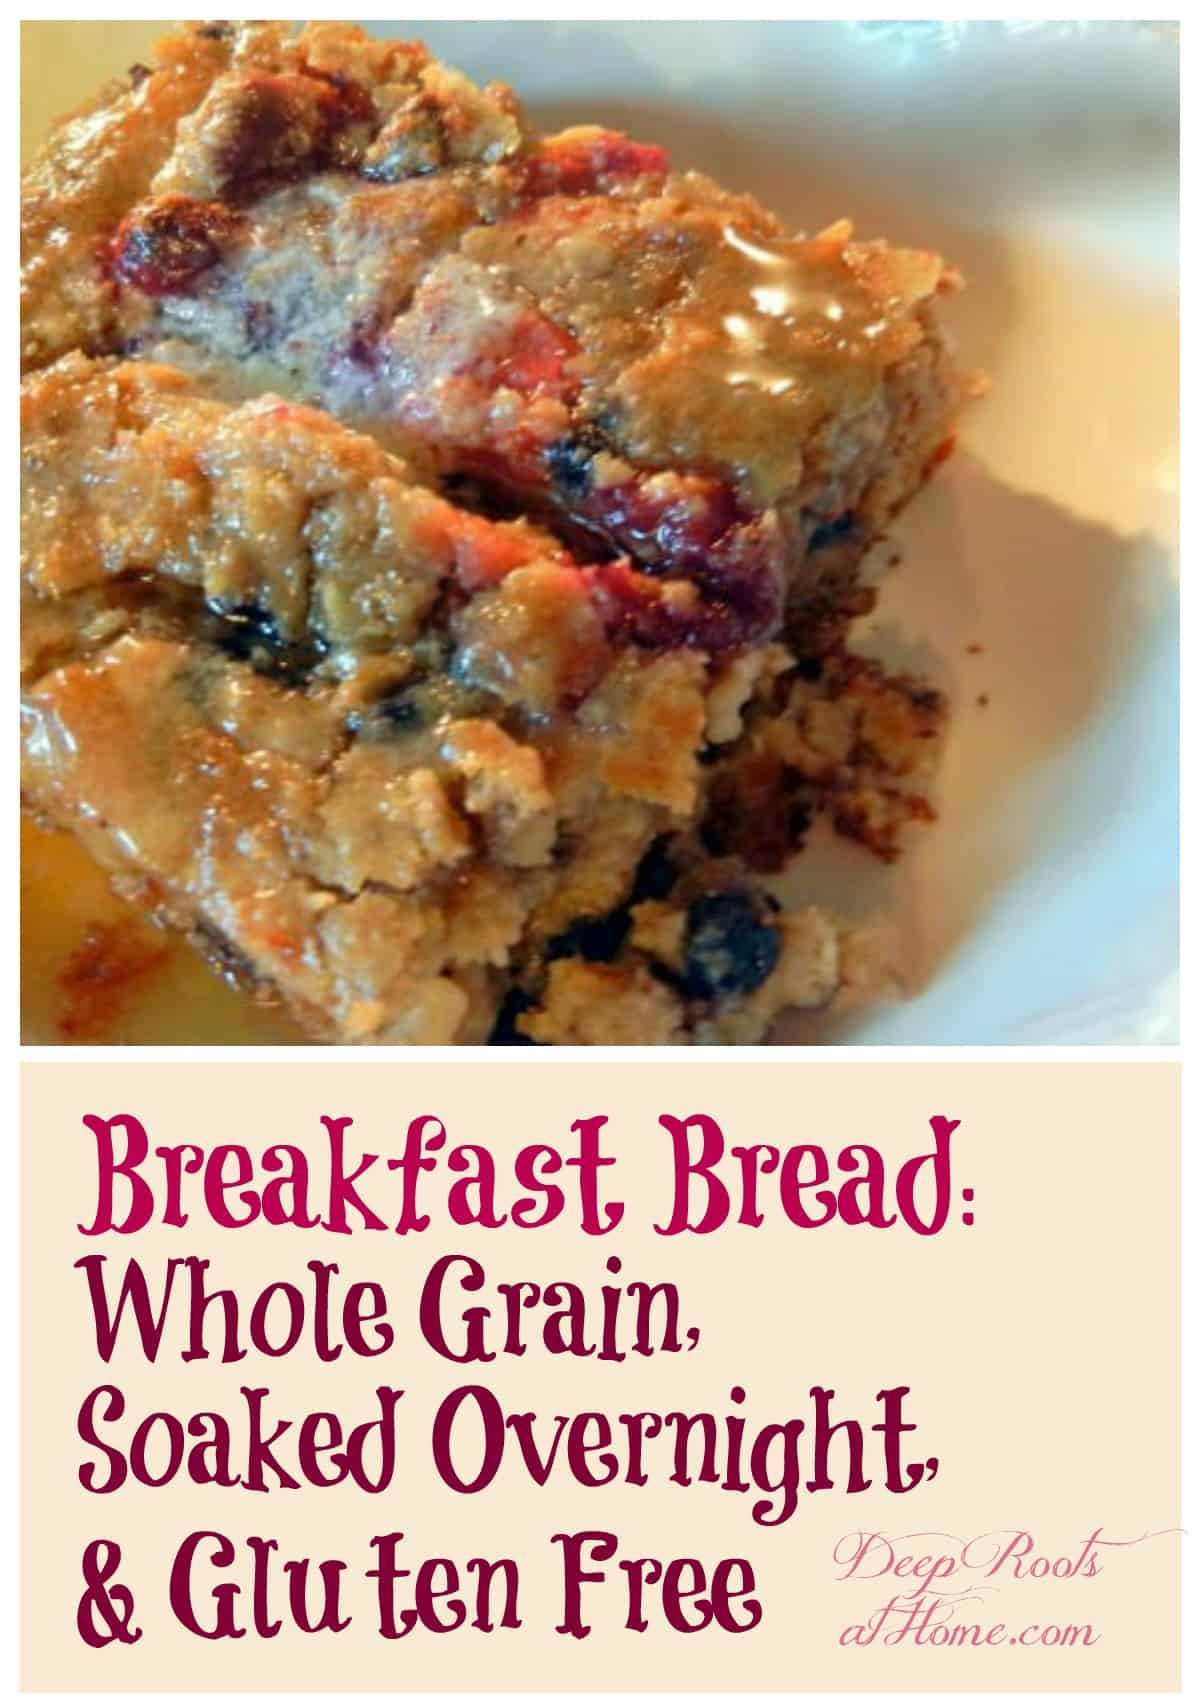 Breakfast Bread: Whole Grain, Soaked Overnight & Gluten Free. A nutritionally dense, hearty breakfast oat bread with berries and nuts, butter and honey. Pin image.